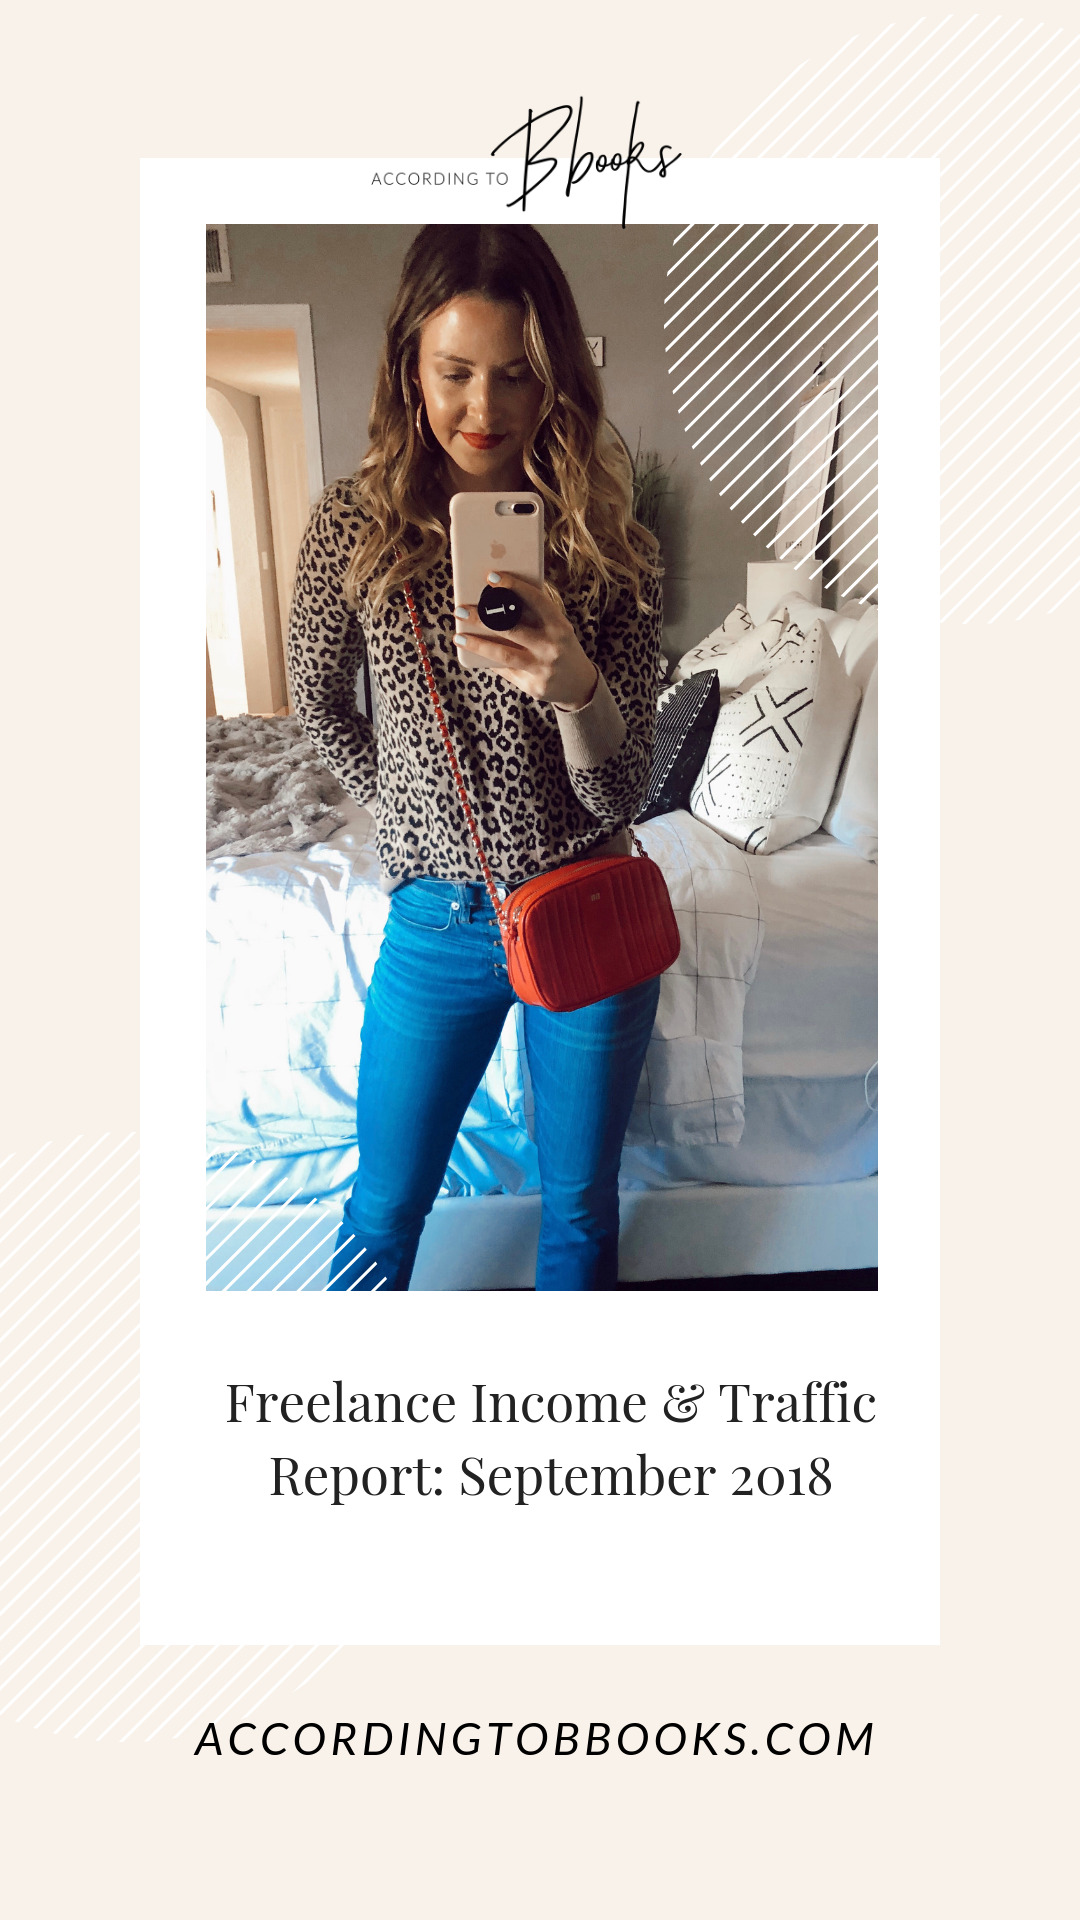 Freelance Income & Traffic Report: September 2018